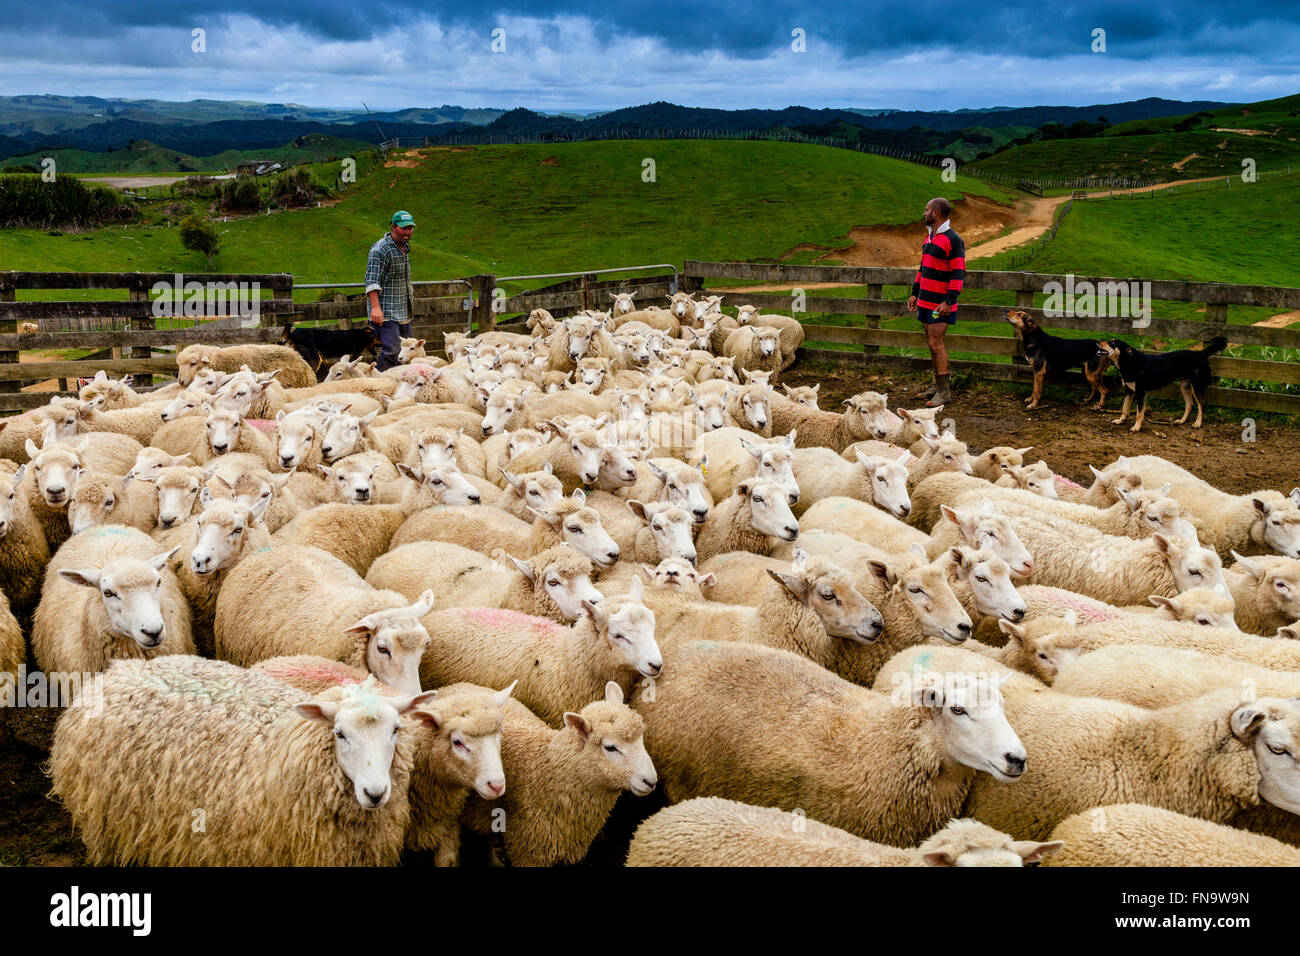 Sheep In A Sheep Pen Waiting To Be Sheared, Sheep Farm, Pukekohe, New Zealand - Stock Image